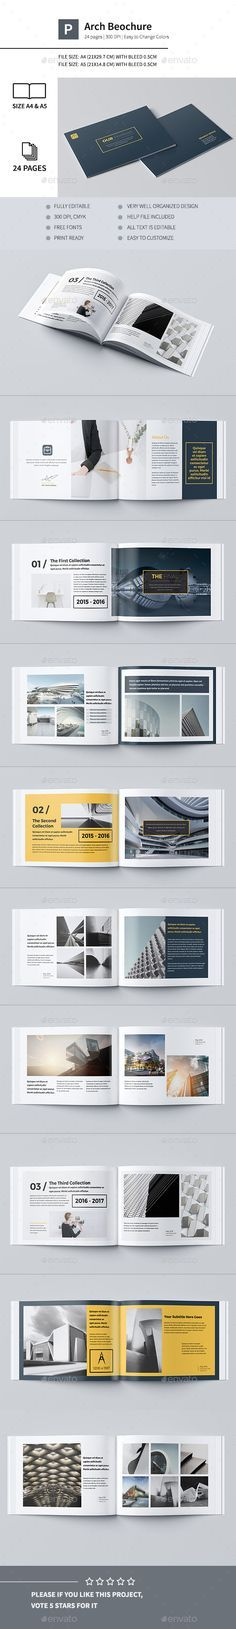 Behance Architecture Undergraduate Portfolio On Behance   Pinteres